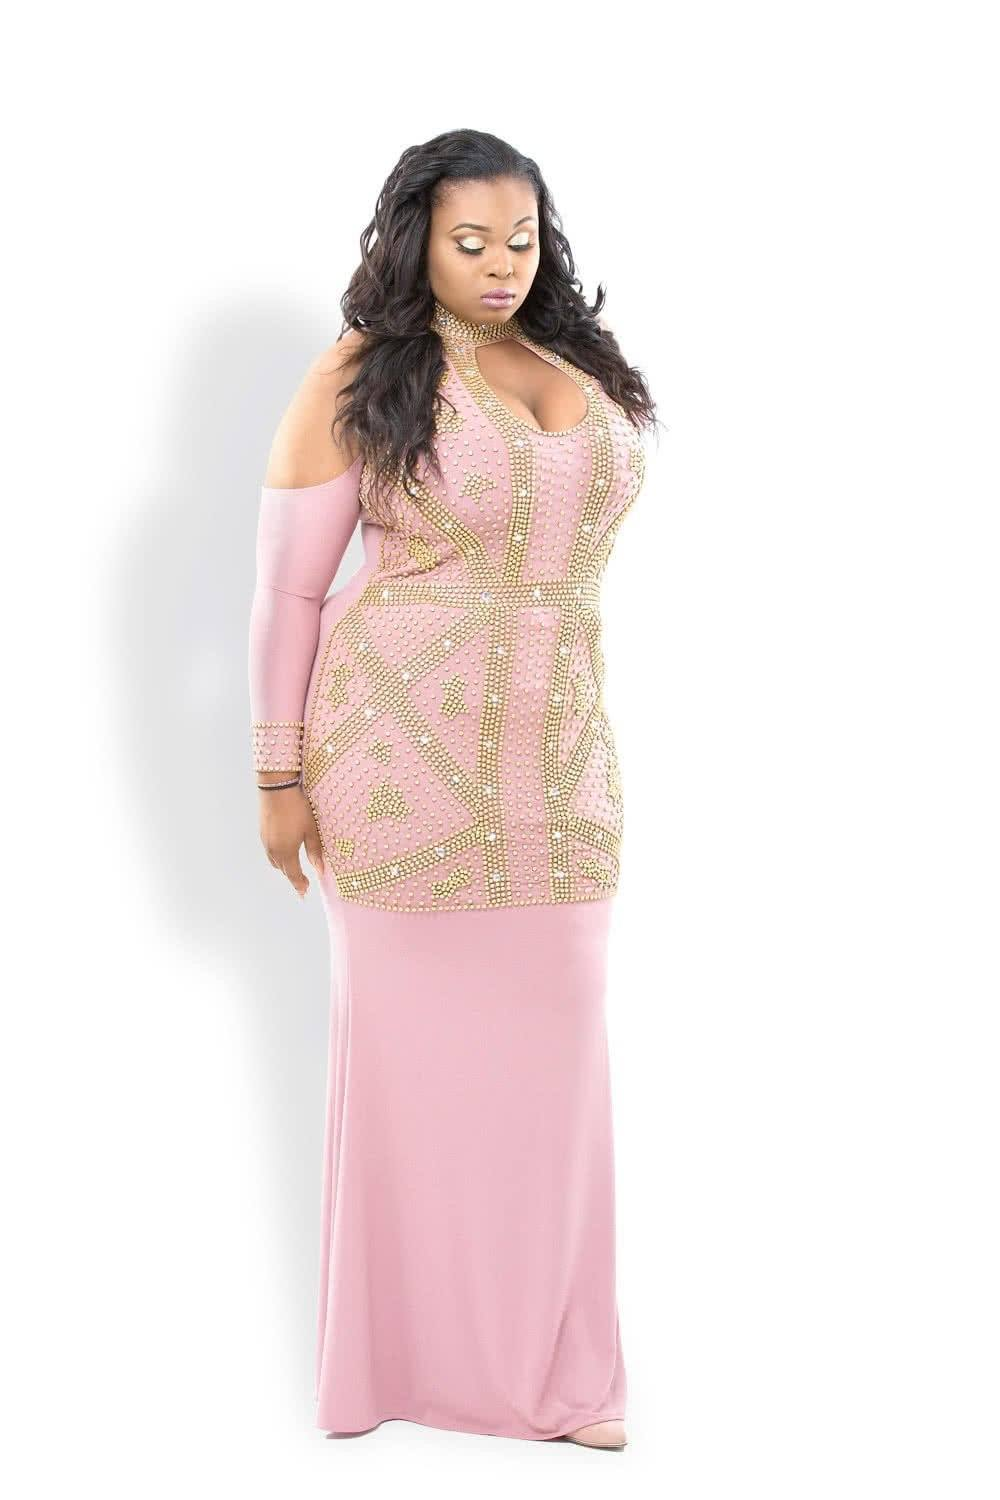 Plus Size Evening Gowns at 50% discount! Get beautiful Plus ...